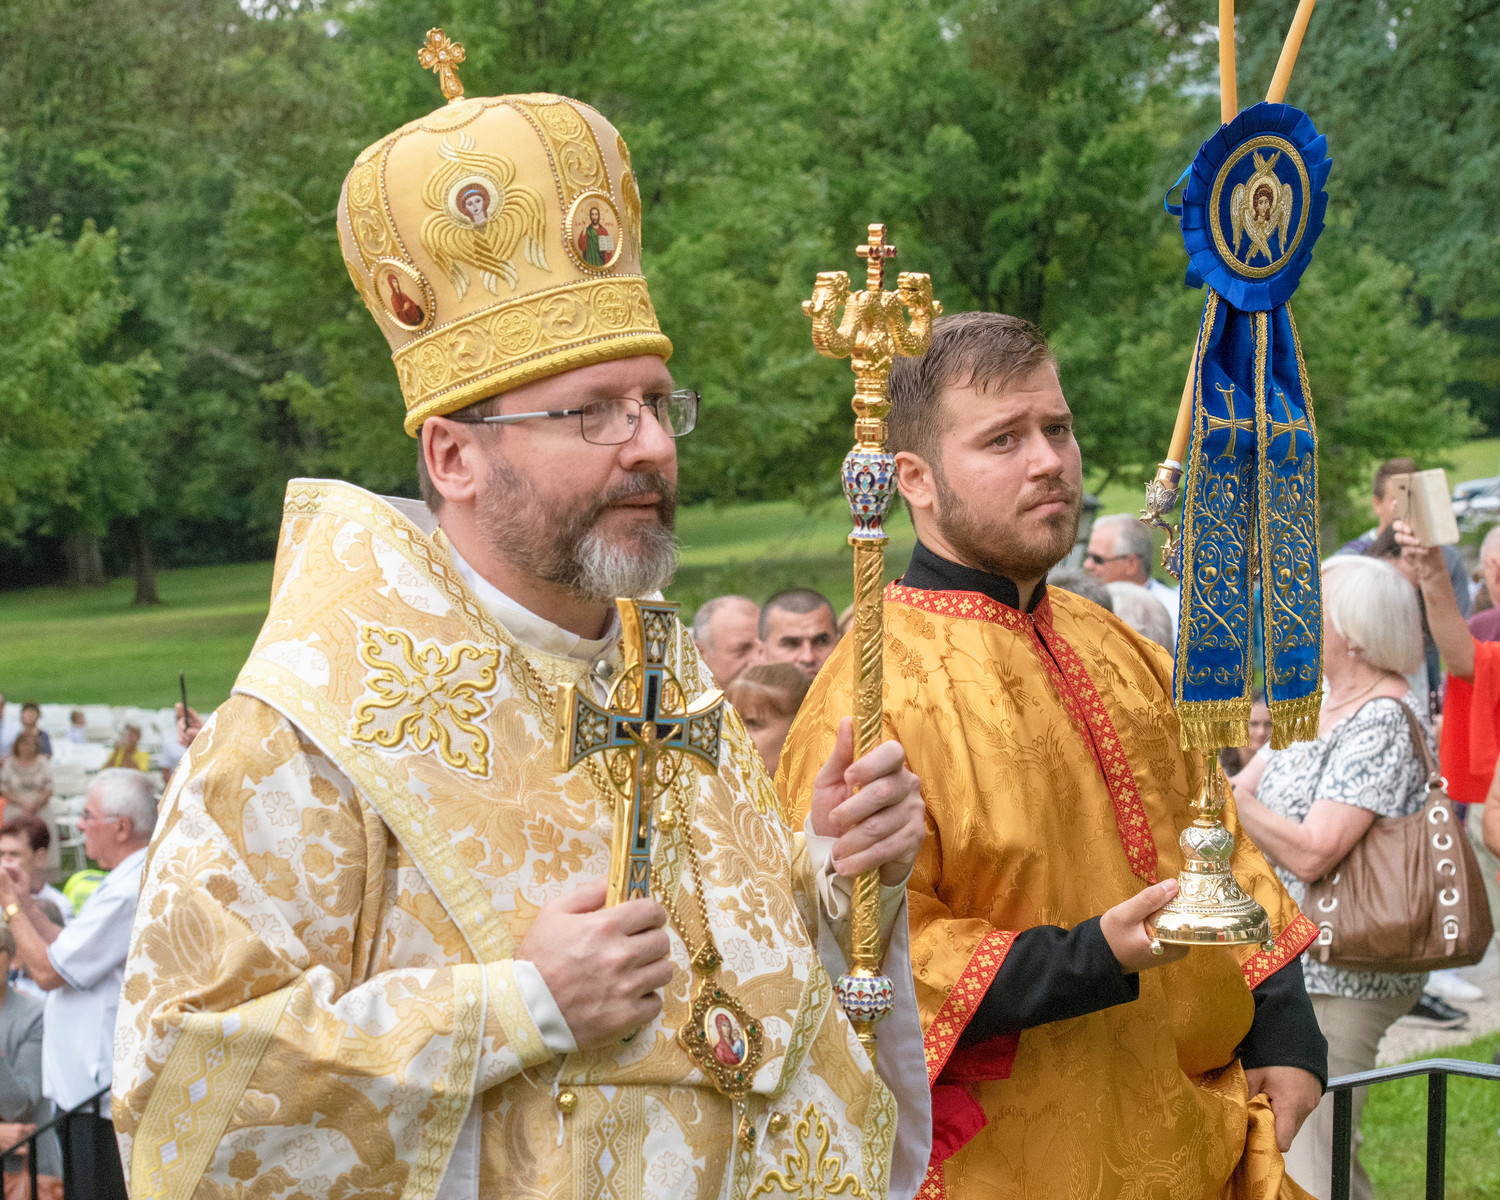 Major Archbishop Sviatoslav Shevchuk, of the Ukrainian Greek Catholic Church approaches the altar during the Divine Liturgy at the 64th Holy Dormition (Assumption) Pilgrimage in Sloatsburg Aug. 12.